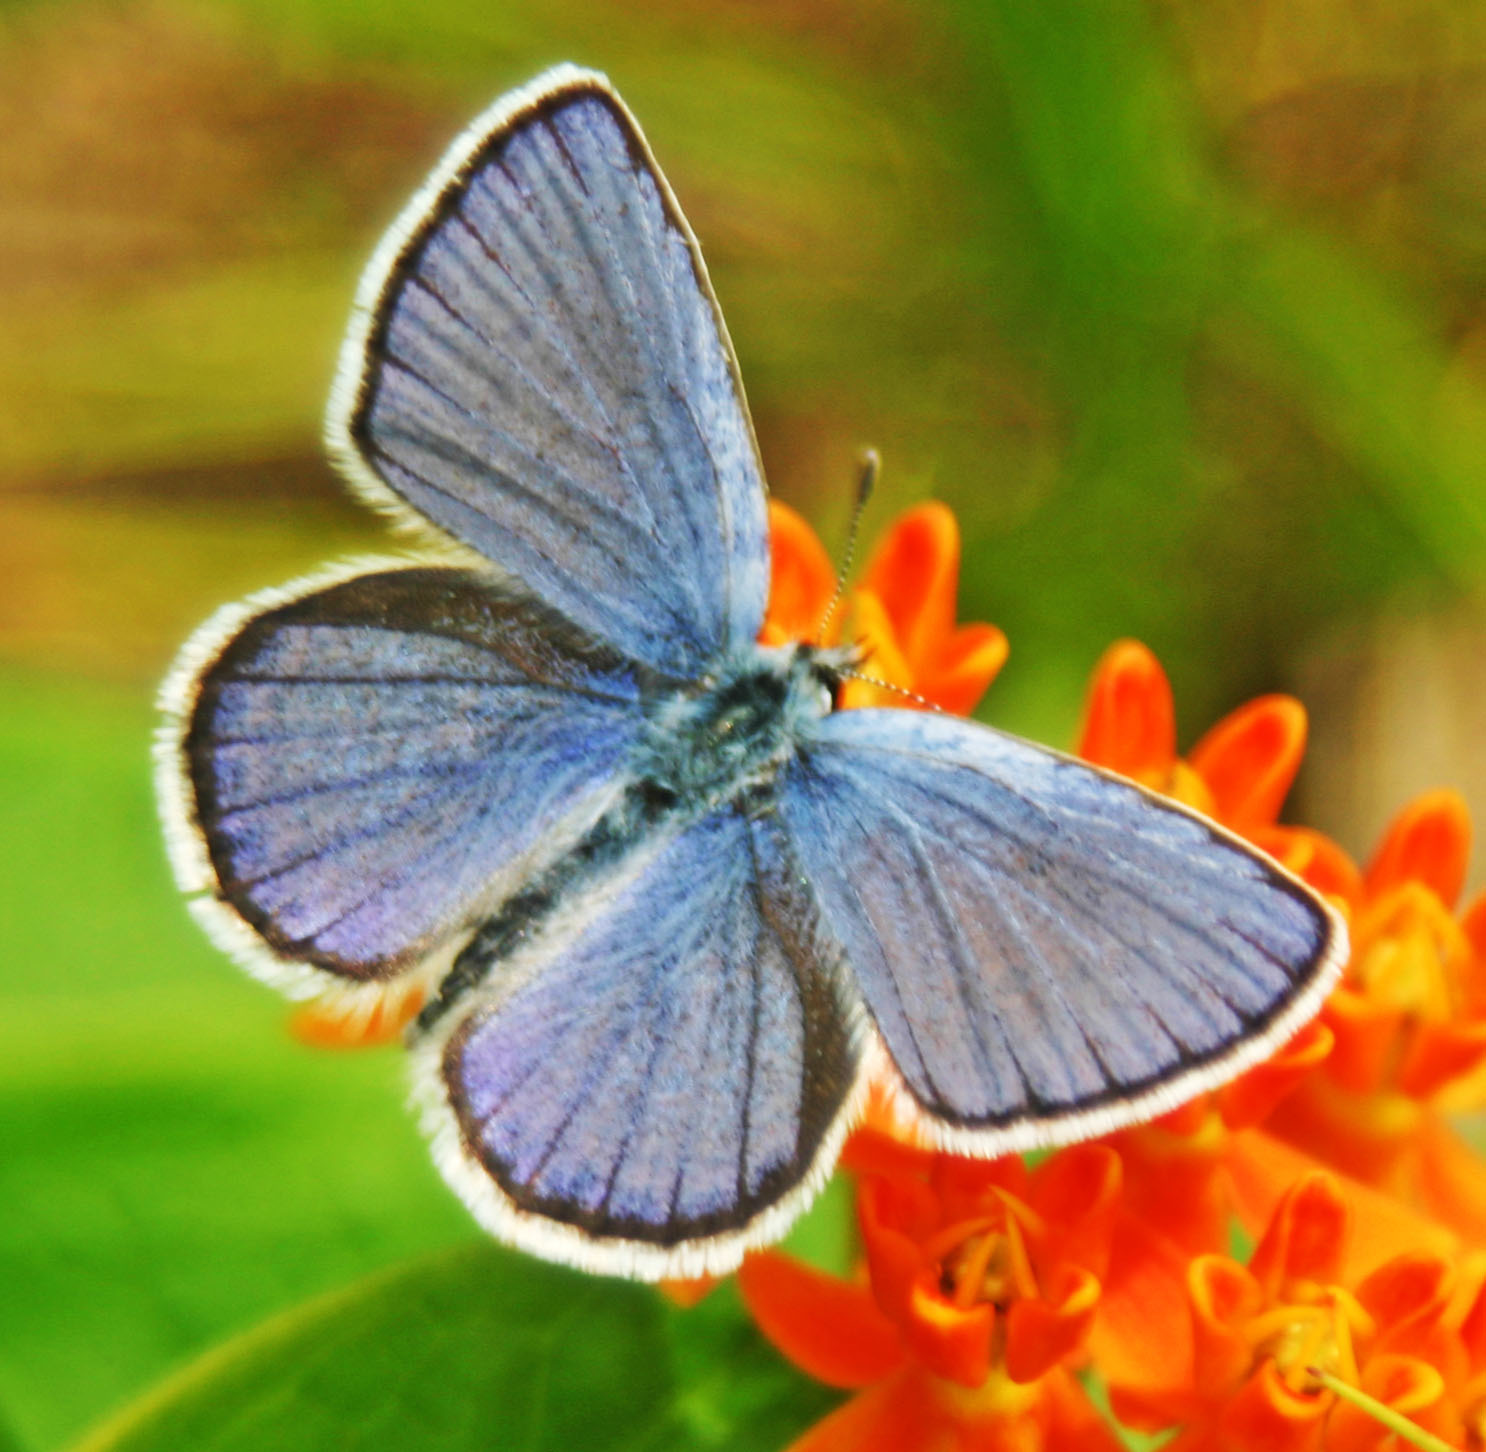 Male Karner Blue butterfly